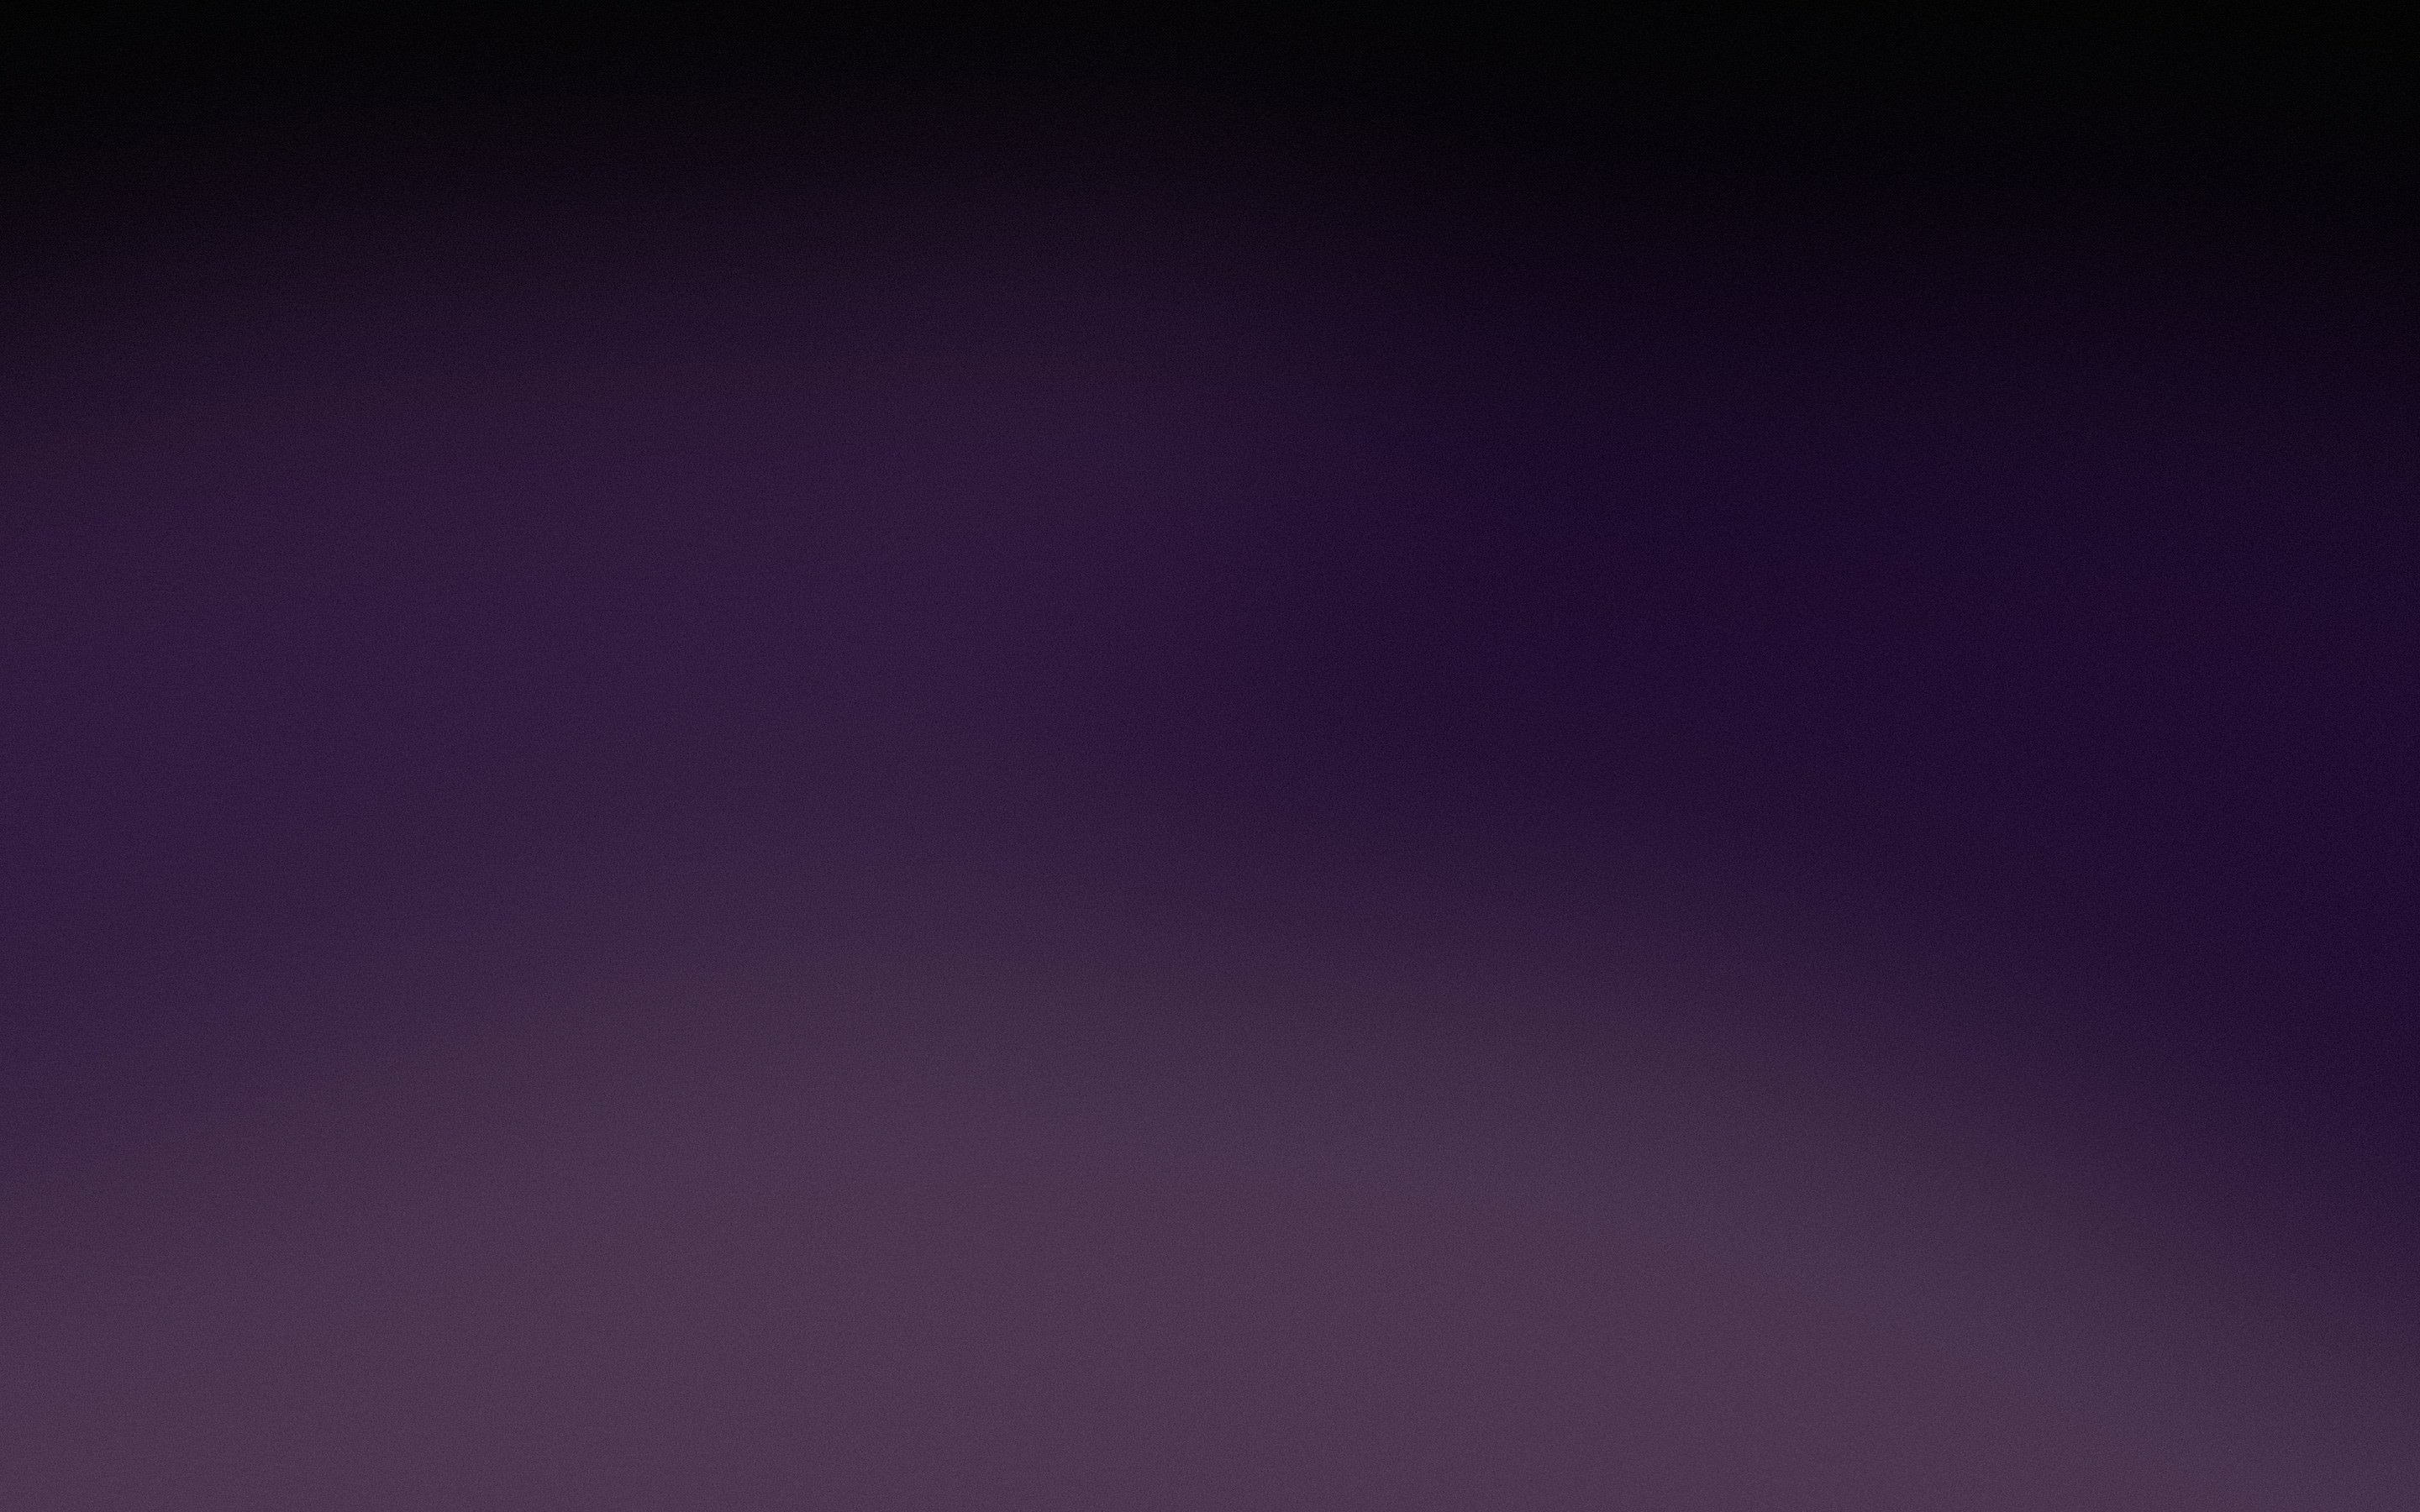 Plain Purple Background